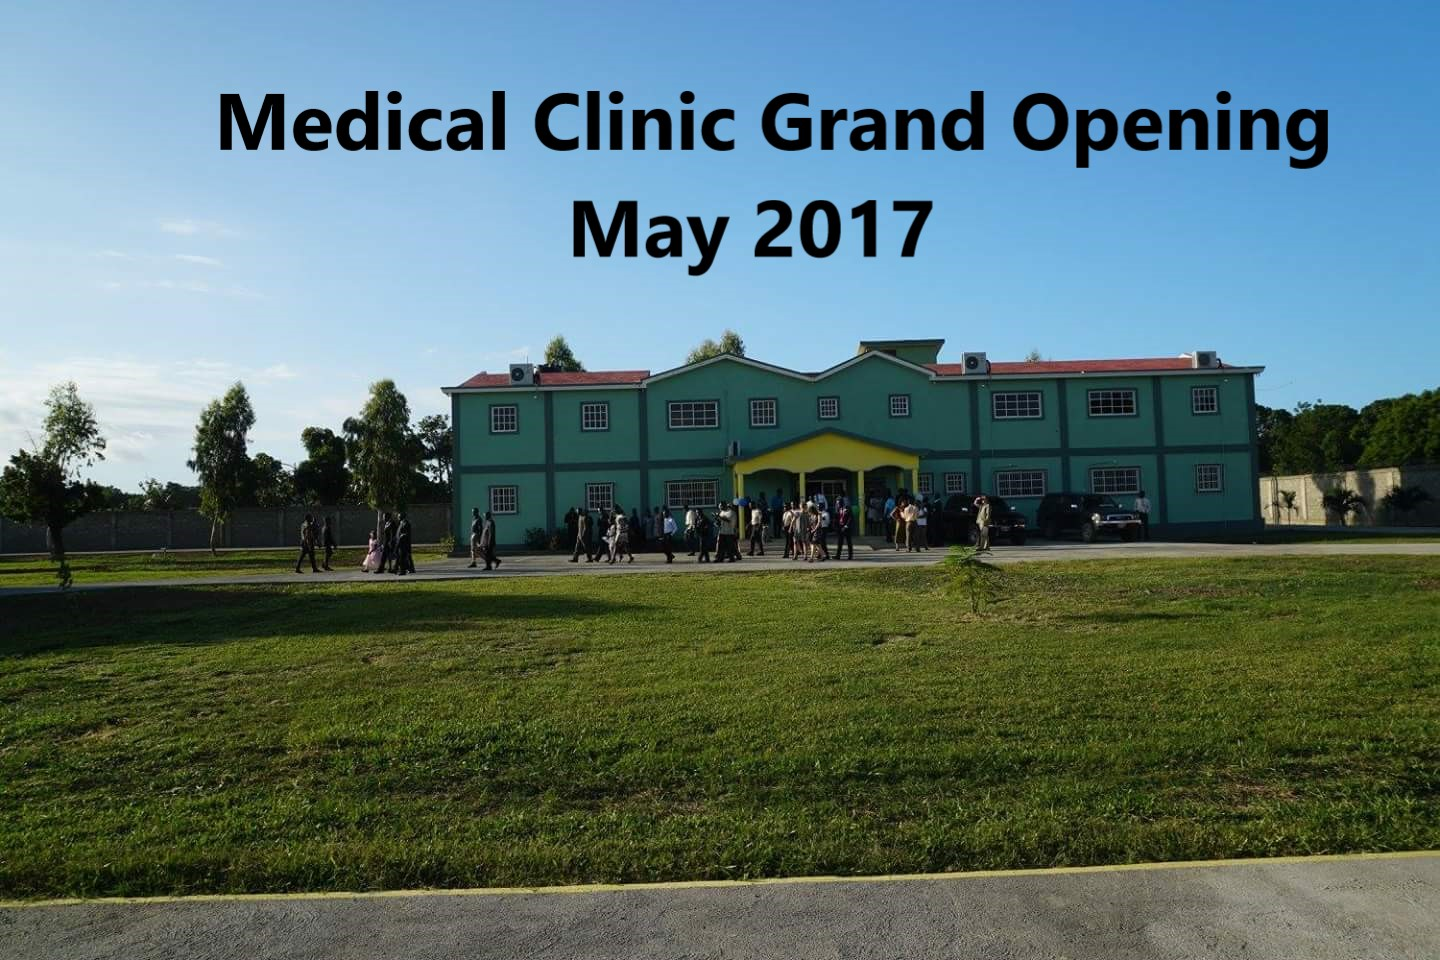 Medical Clinic Grand Opening 2017.jpg